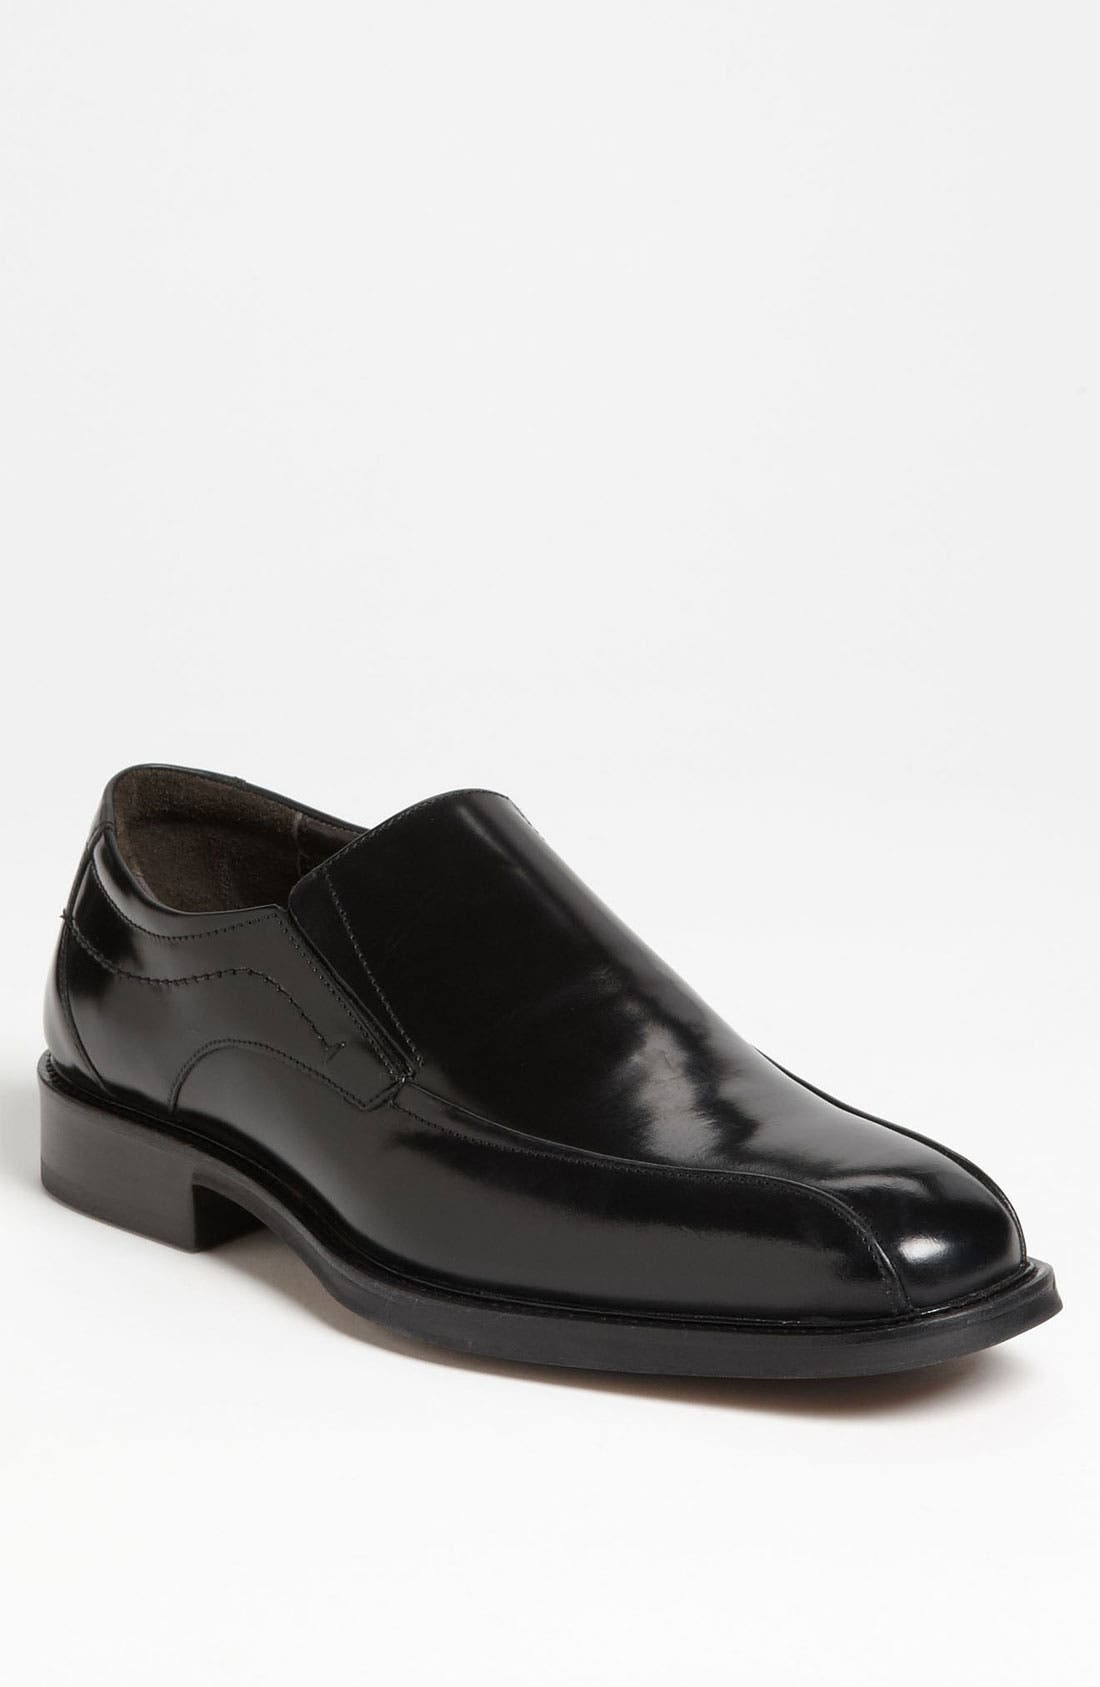 Alternate Image 1 Selected - Johnston & Murphy 'Alderson' Venetian Loafer